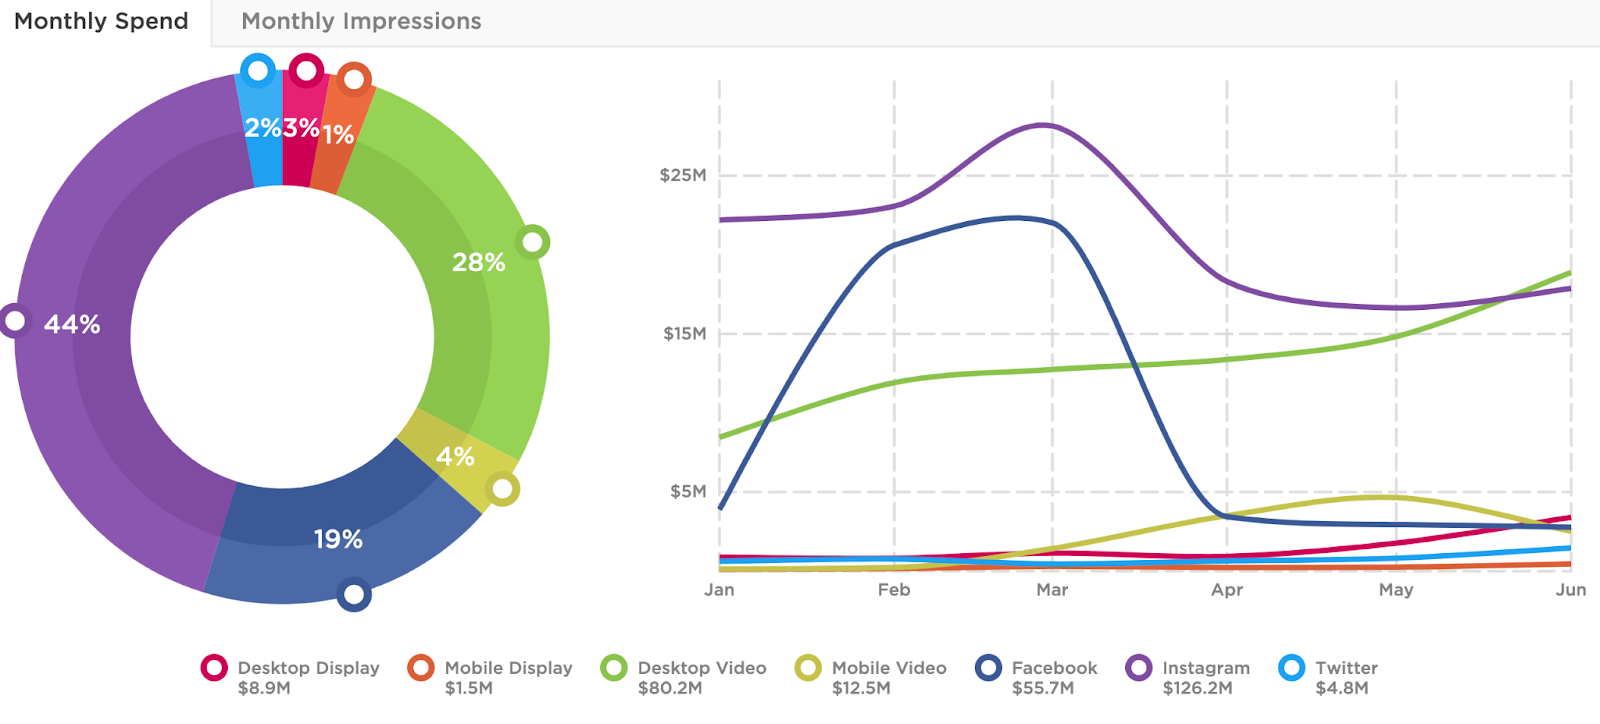 P&G has high spend on Instagram in H1 2021